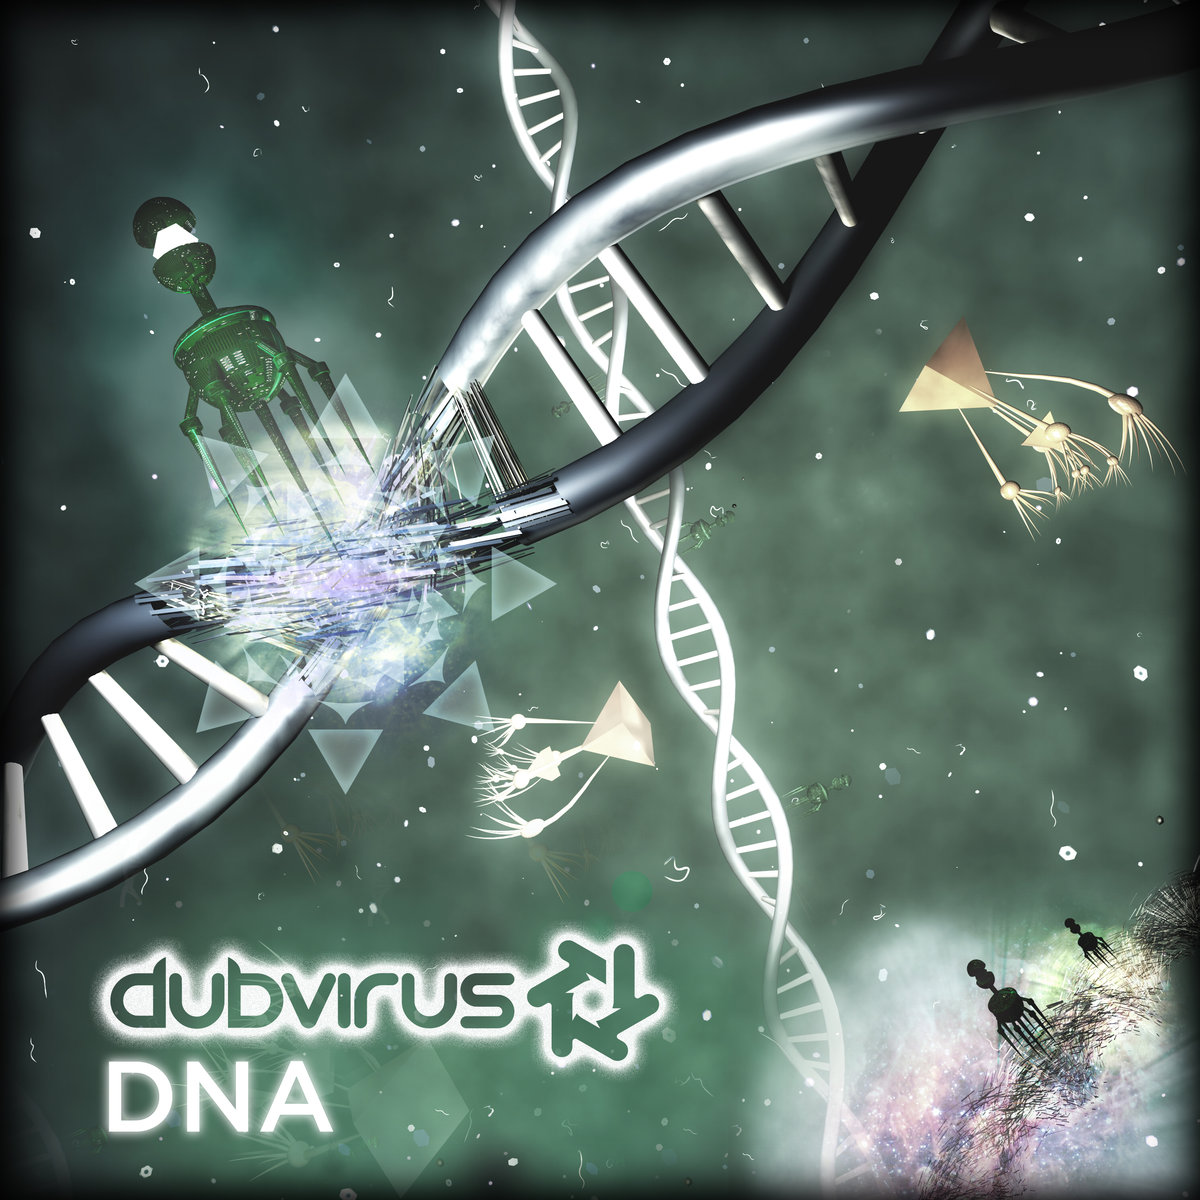 Dubvirus - Source @ 'DNA' album (bass, dubstep)